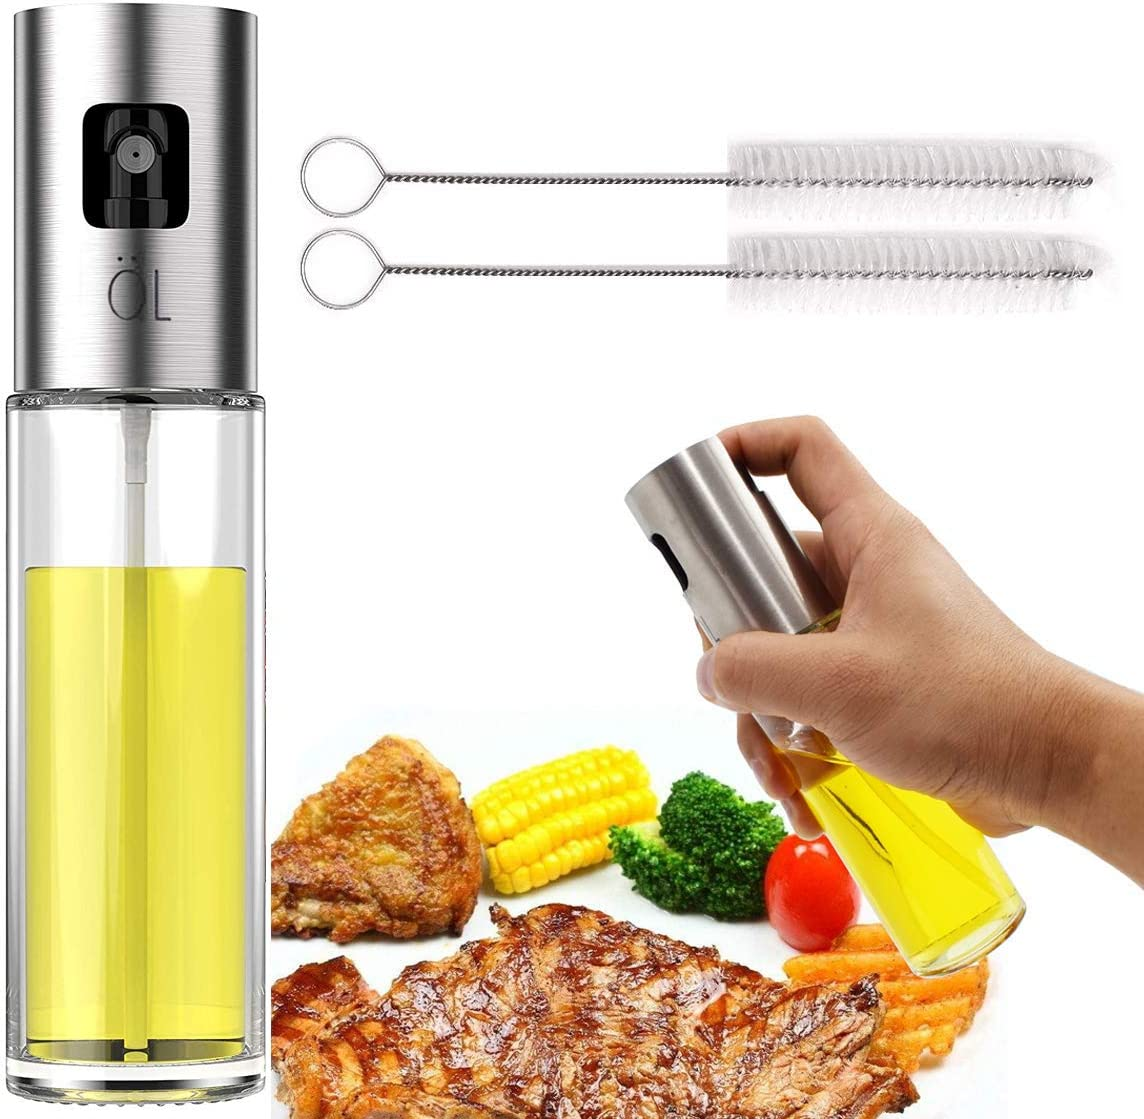 Vhabob Olive Oil Sprayer, Stainless Steel Refillable Oil Misters for Cooking, Oil Spritzer Dispenser Bottle with Food-grade Glass for BBQ, Making Salad, Baking, Roasting, Frying, Grilling